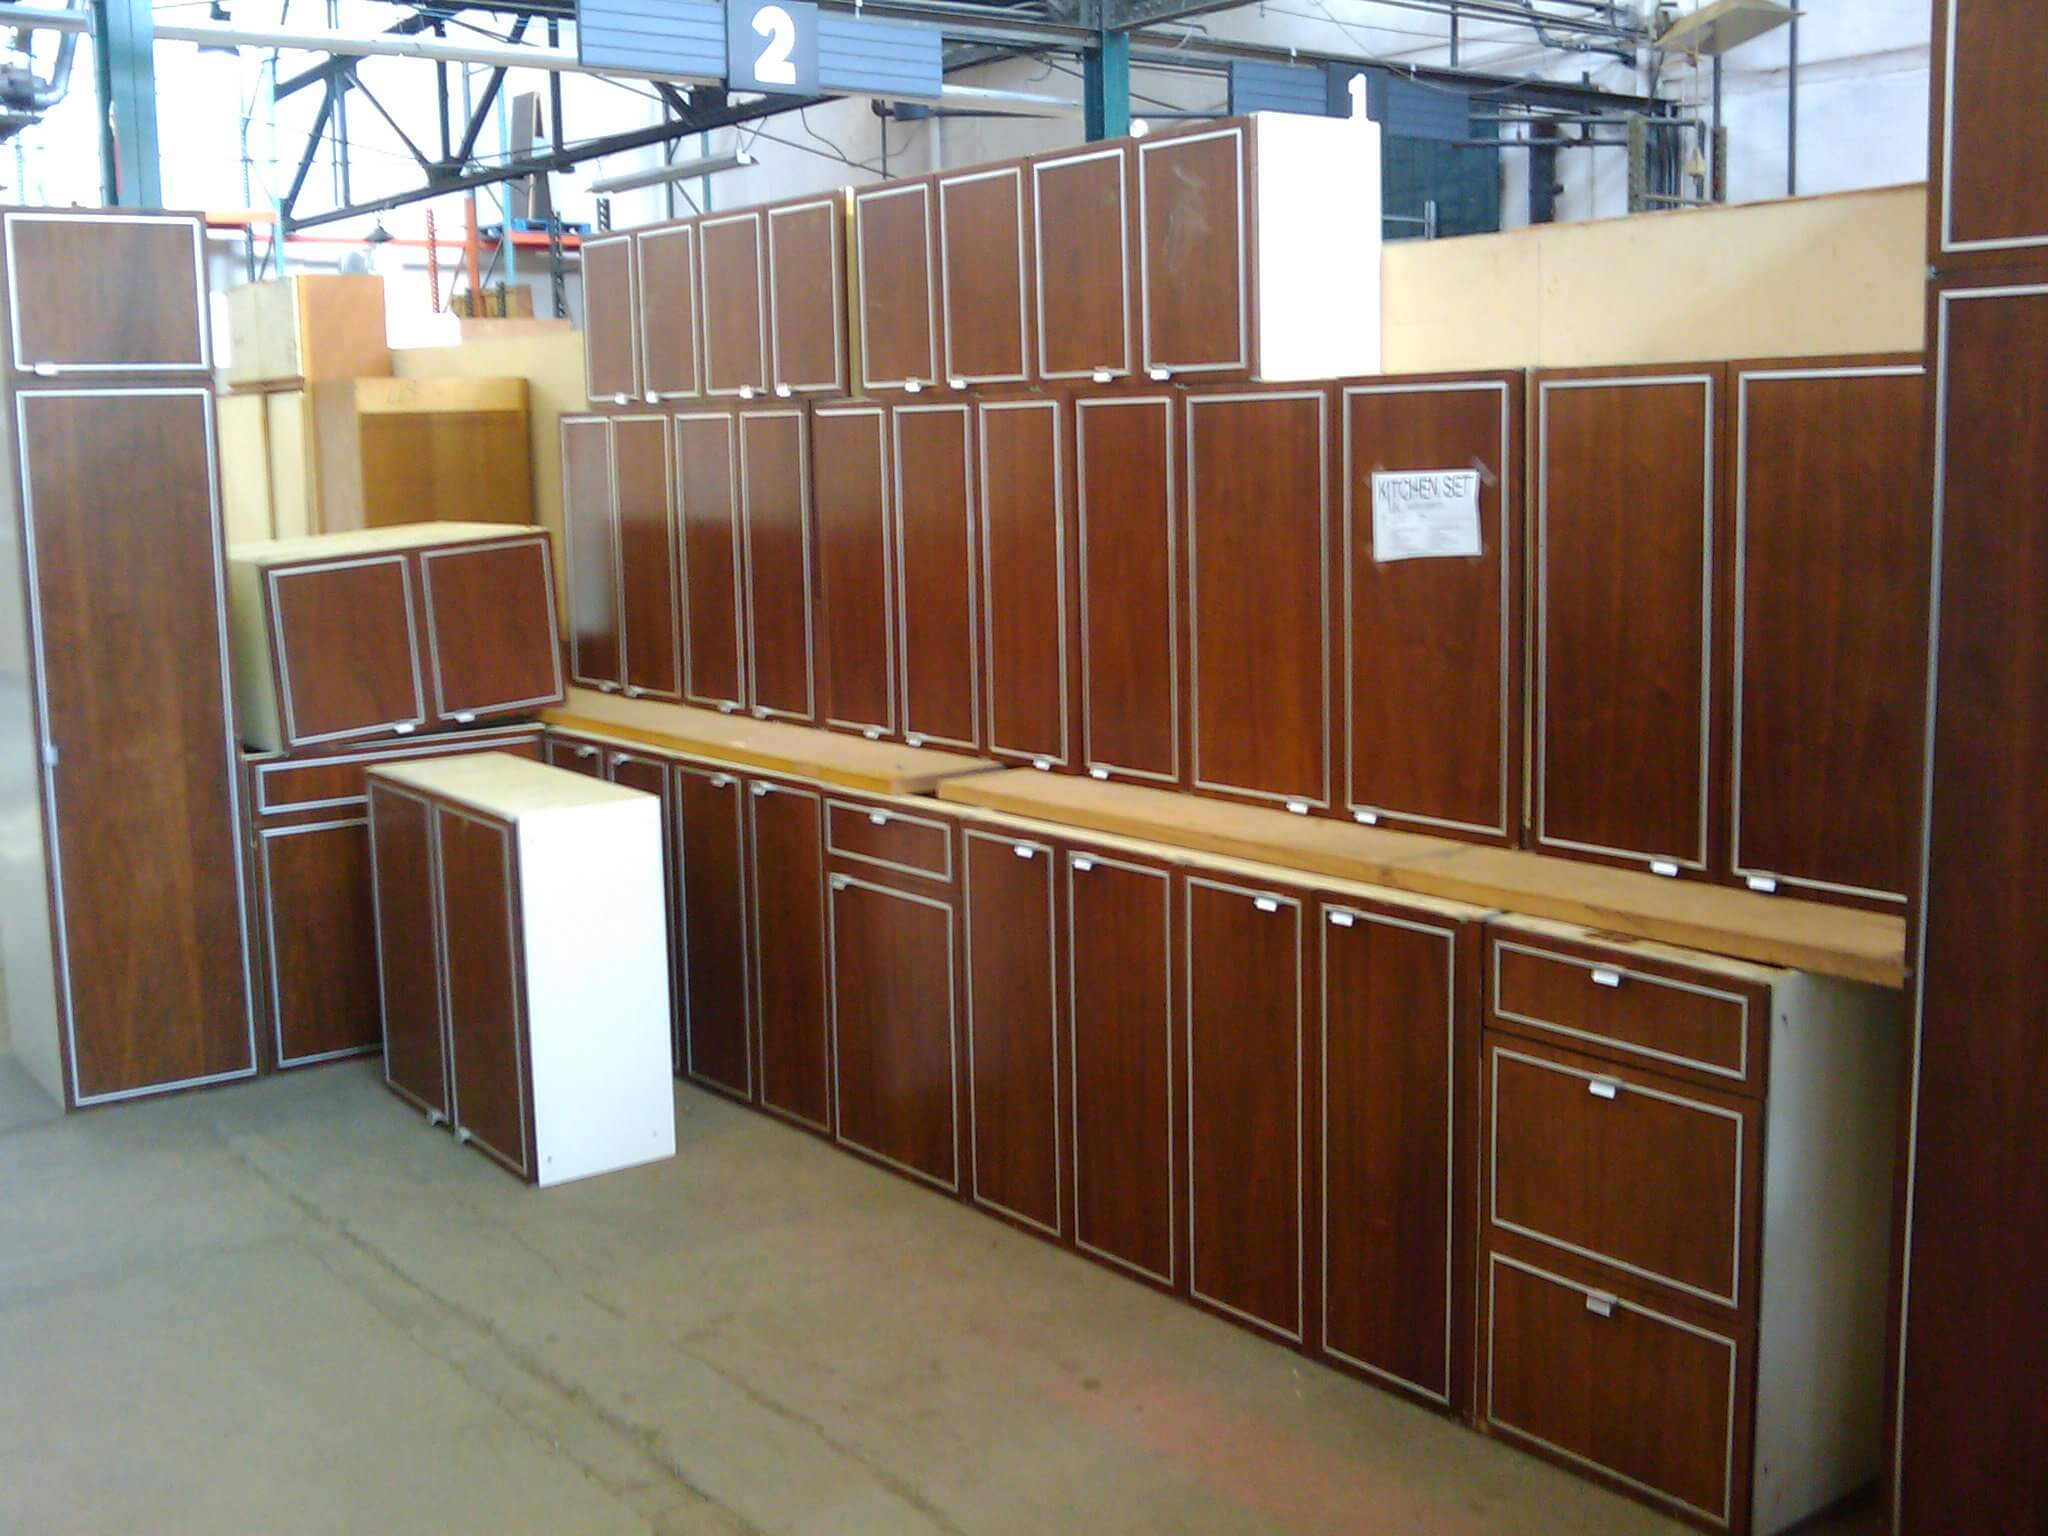 Fabulous St. Charles metal kitchen cabinets for sale in Pittsburgh ...